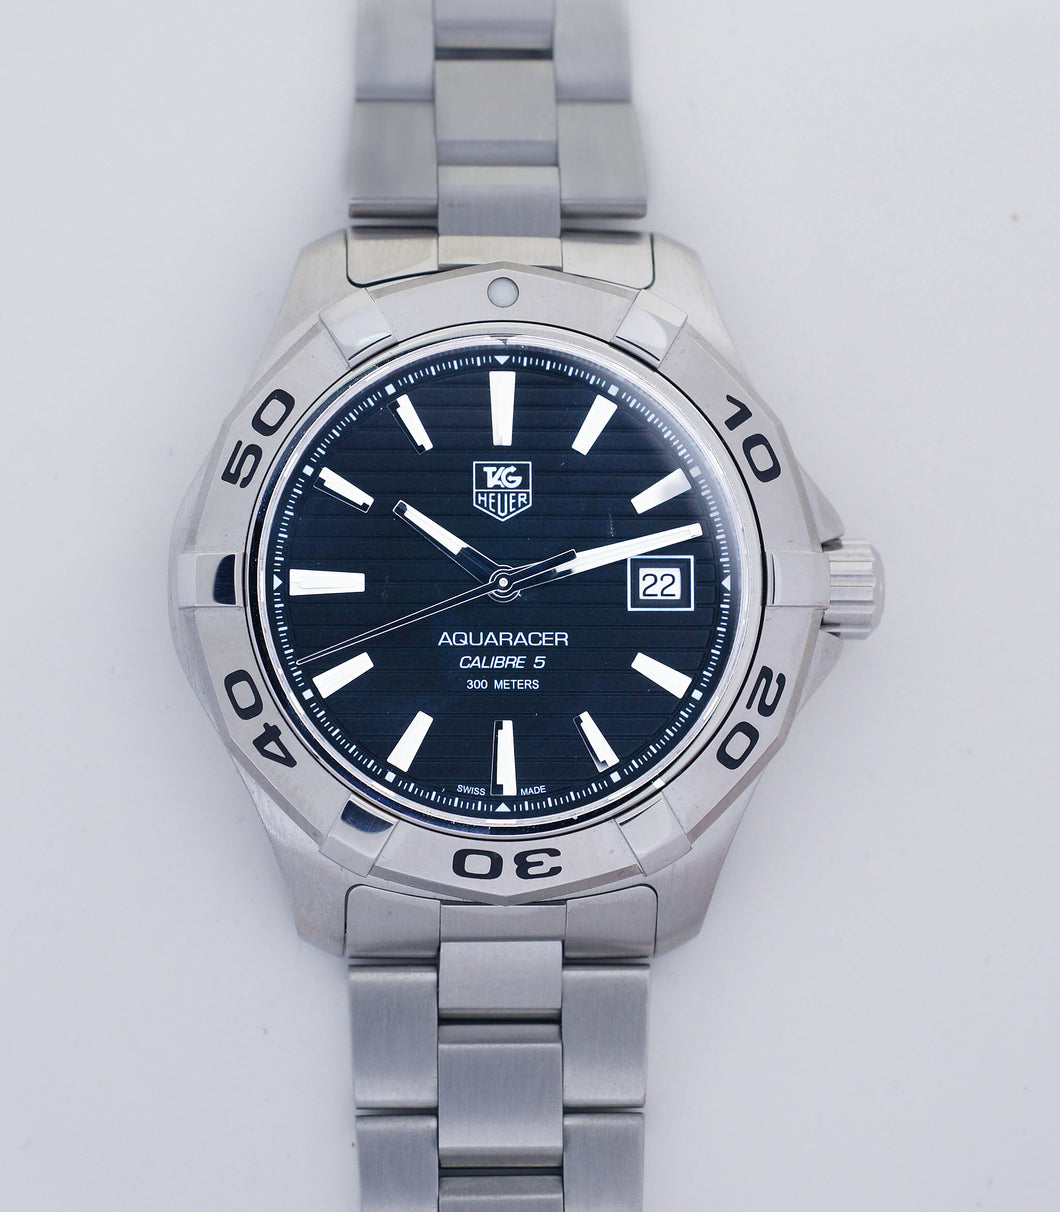 Tag Heuer Aquaracer WAP2010 Calibre 5 Stainless Steel Automatic Mens Watch